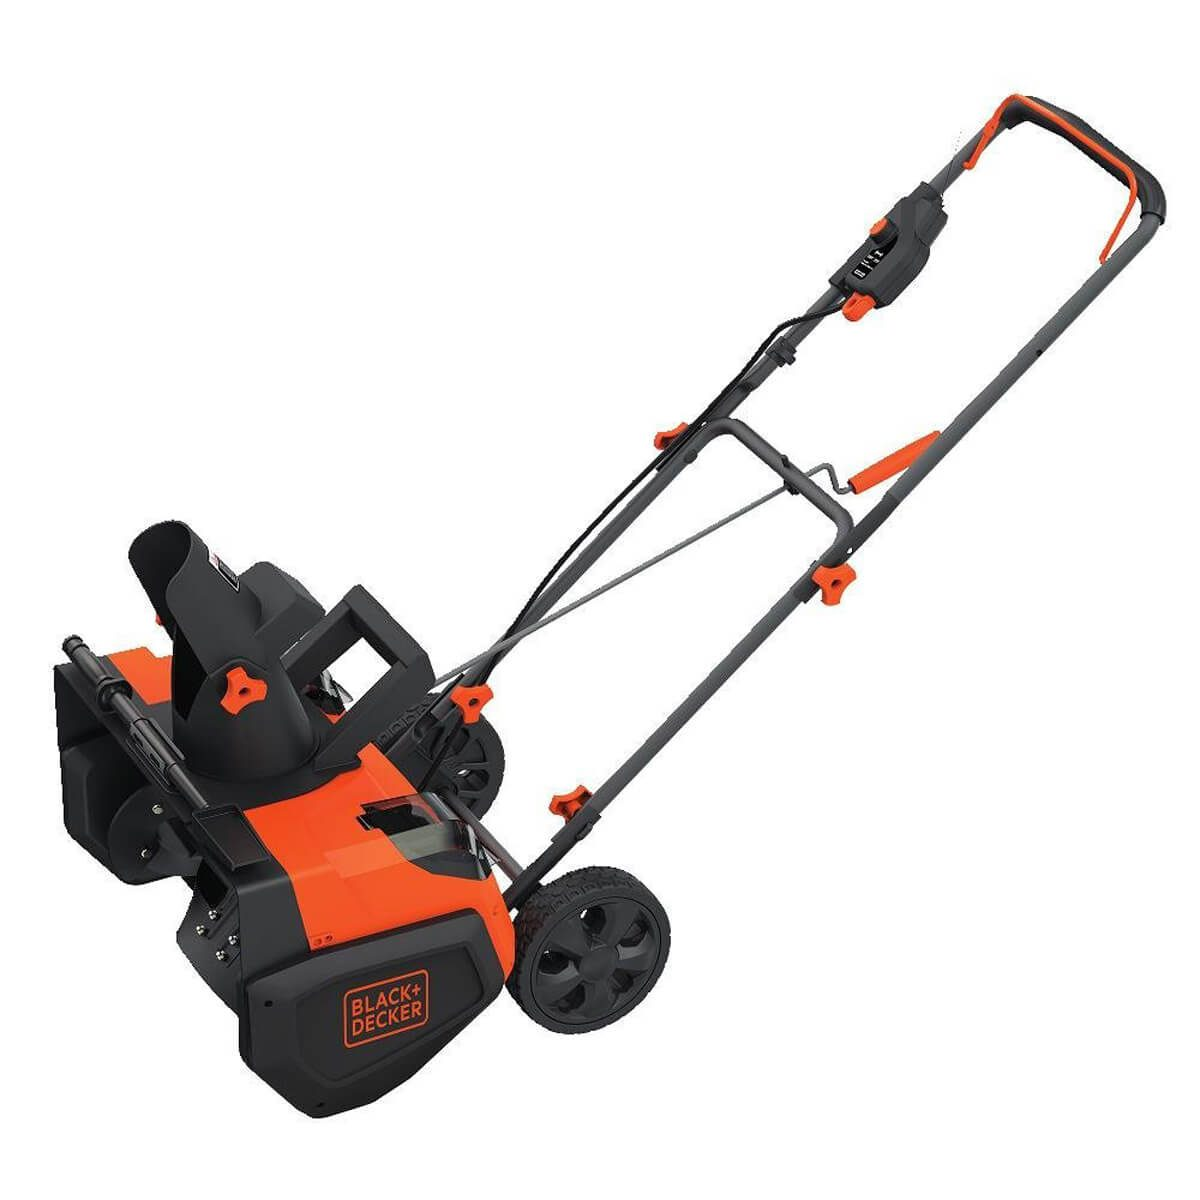 Black + Decker Max Snow Thrower